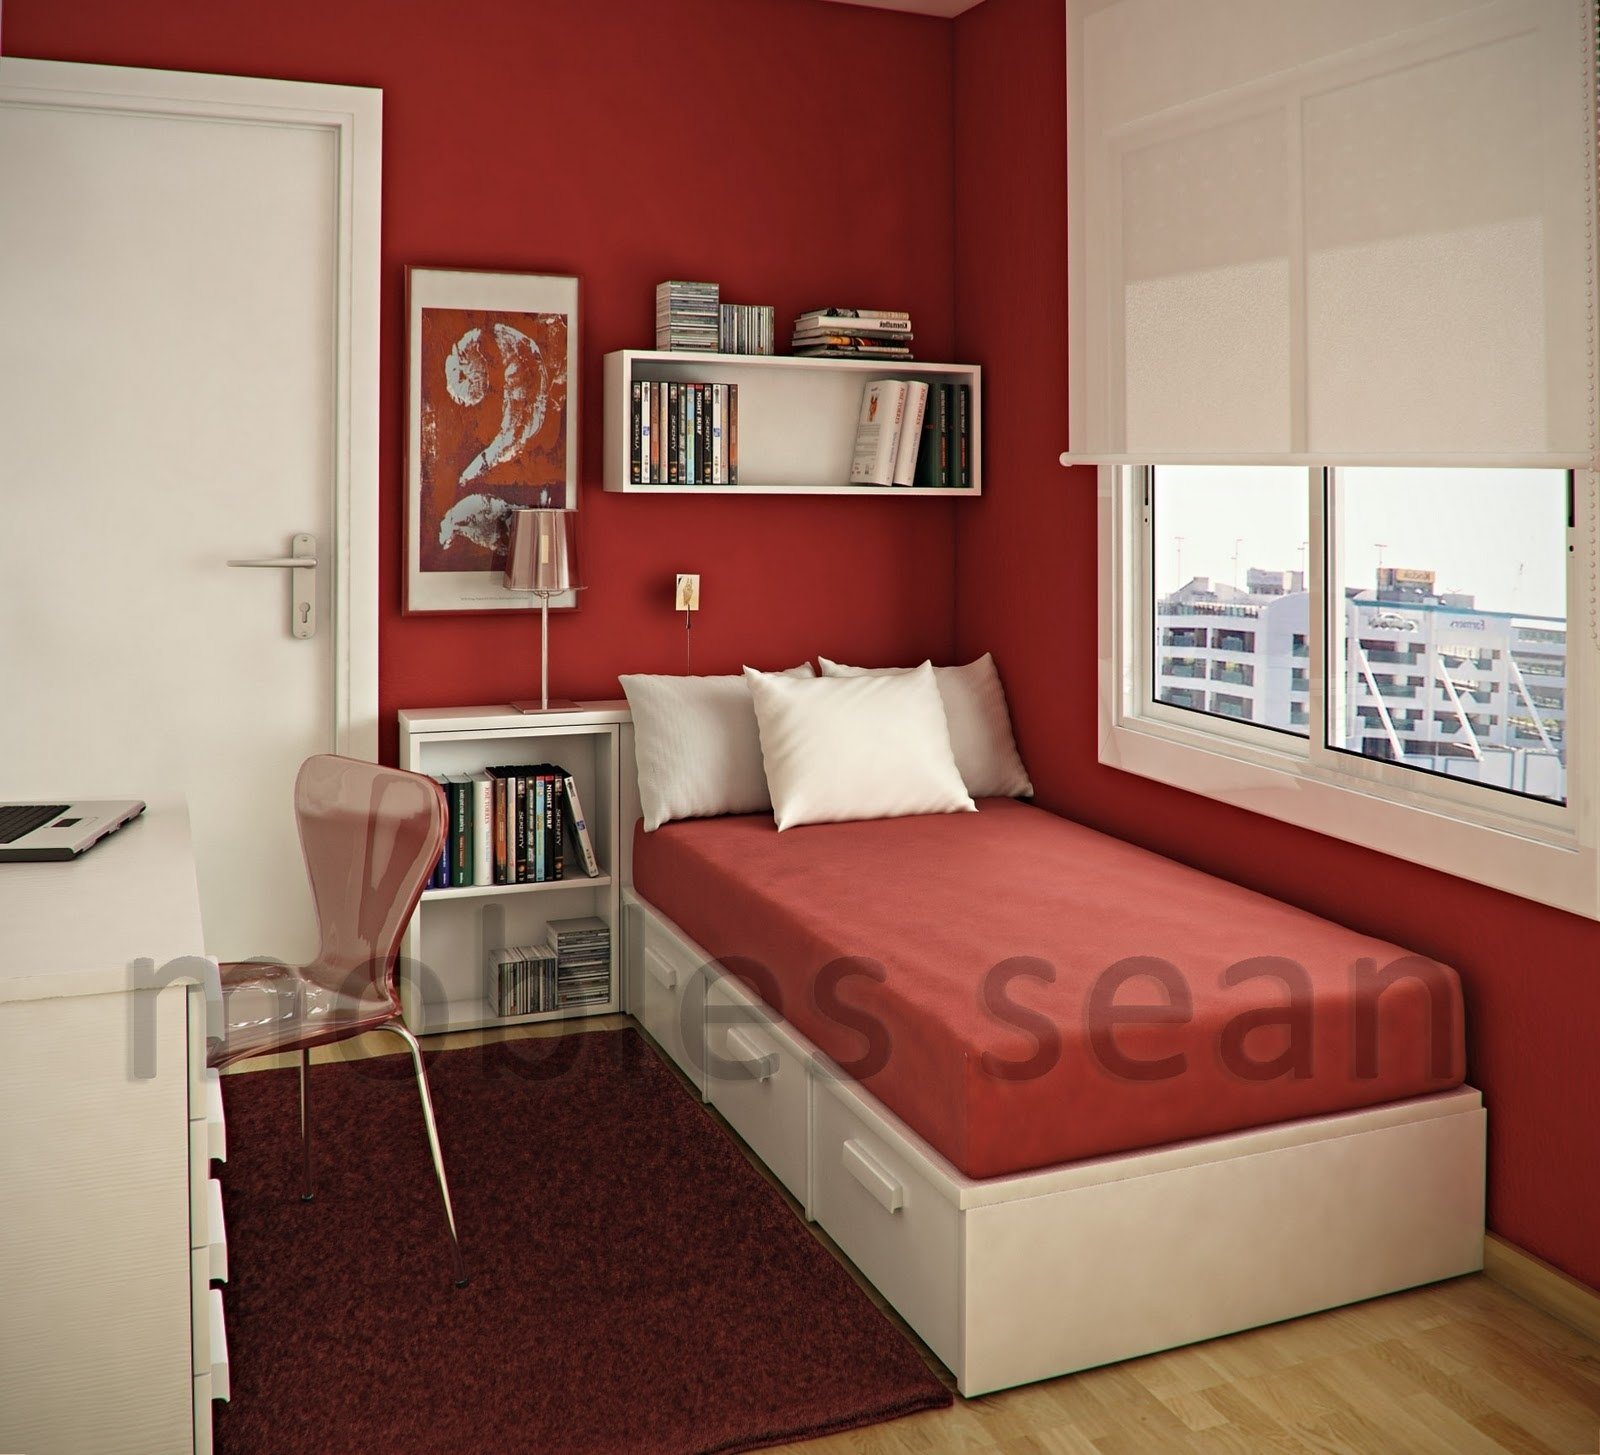 10 Unique Kids Bedroom Ideas For Small Rooms simple small bedroom designs new space saving designs for small kids 2020